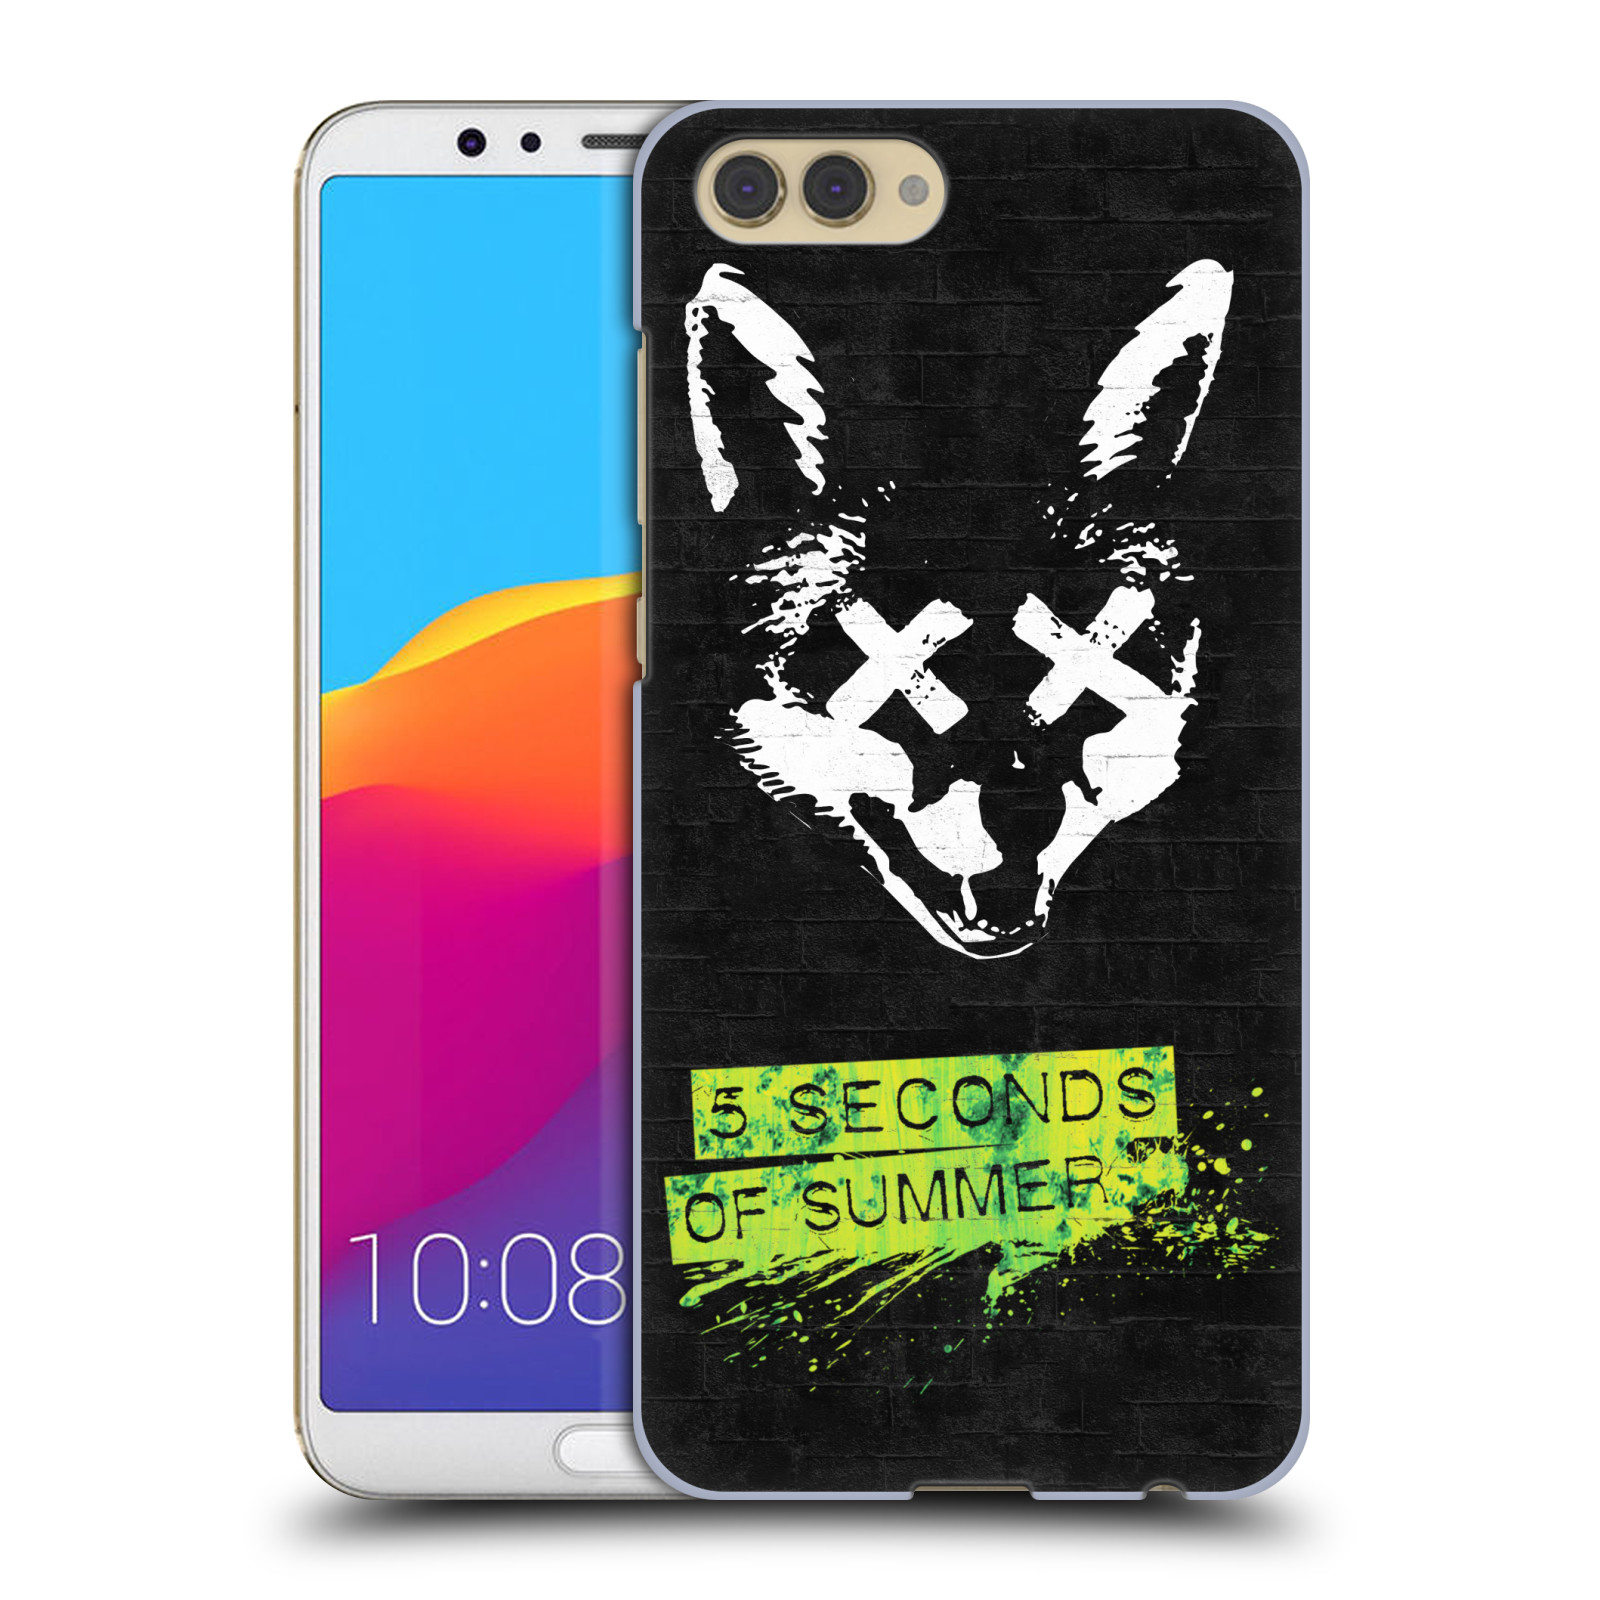 Plastové pouzdro na mobil Honor View 10 - Head Case - 5 Seconds of Summer - Fox